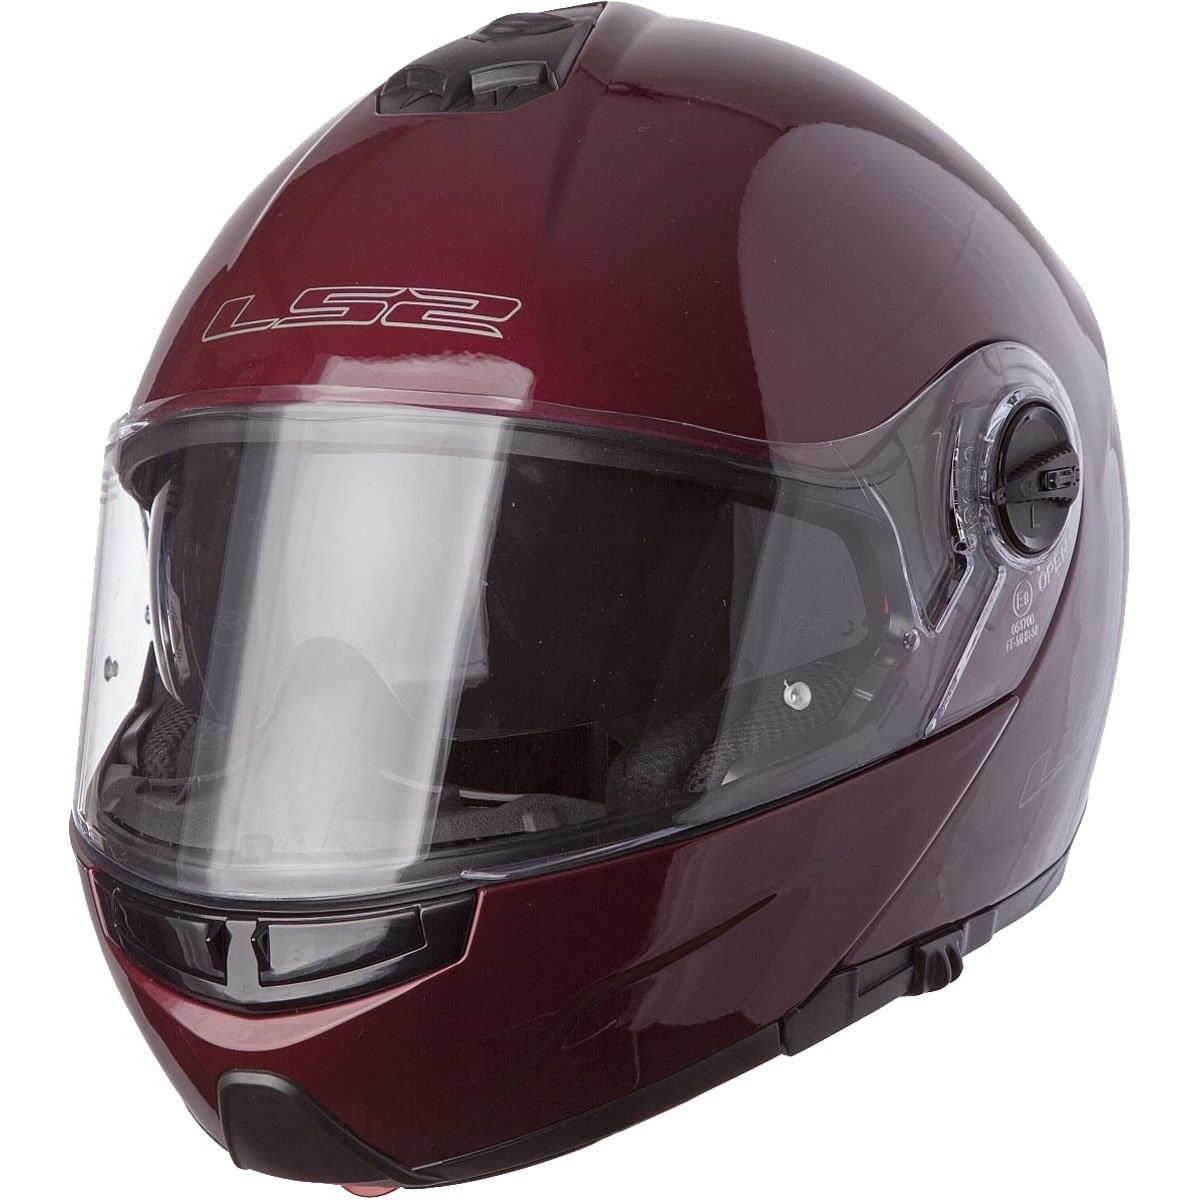 LS2 Helmets Strobe Solid Modular Motorcycle Helmet with Sunshield (Wineberry, Medium) by LS2 Helmets (Image #1)